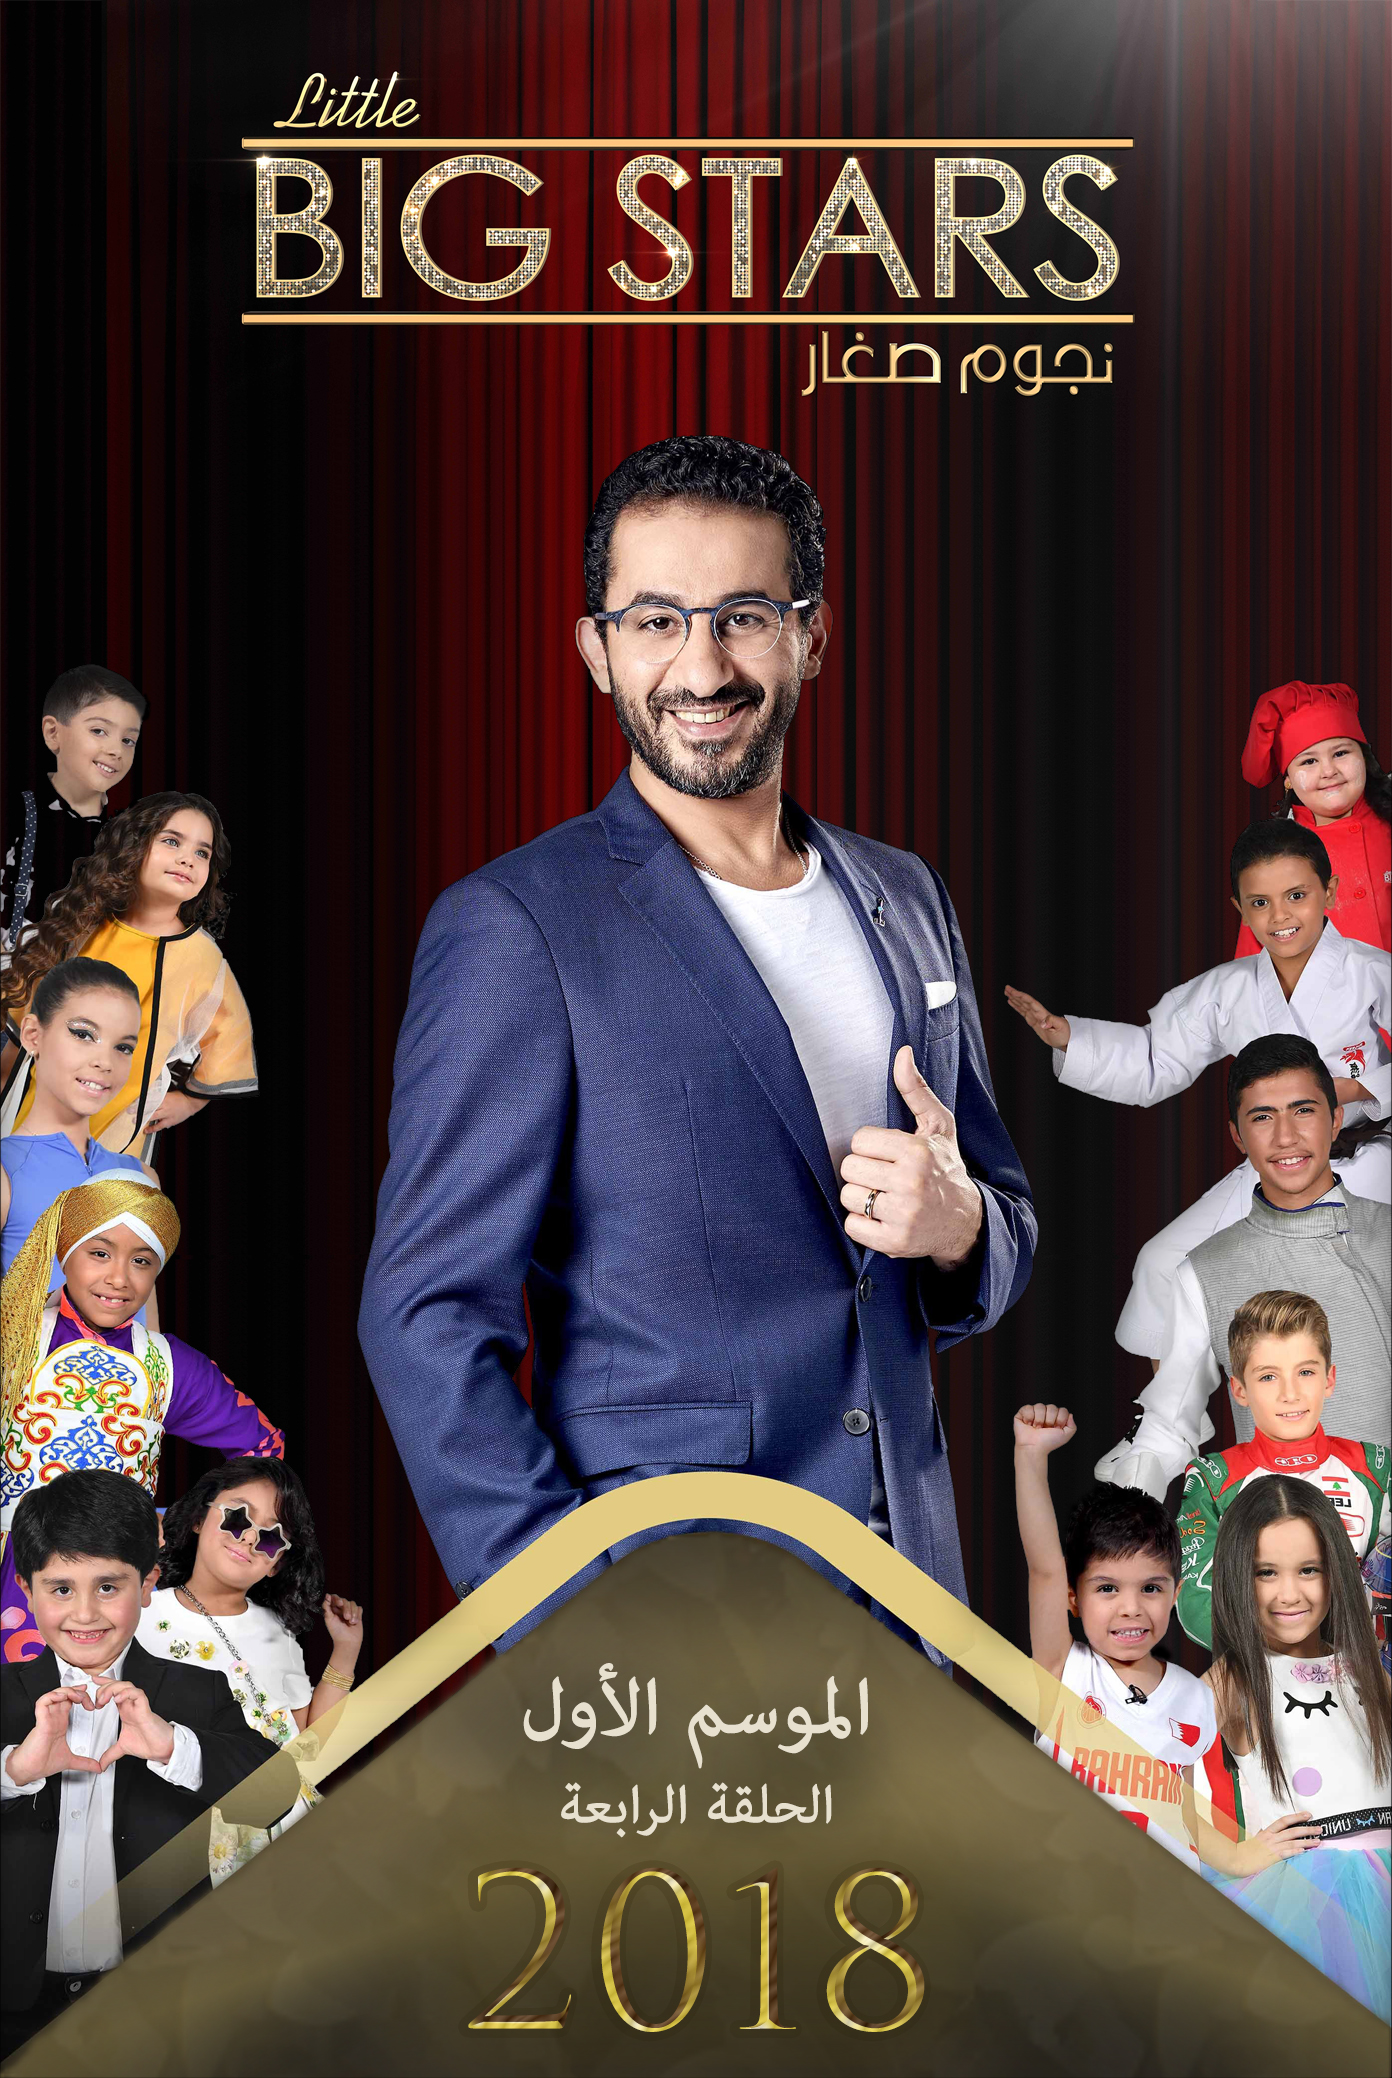 نجوم صغار [م1][ح4][Web DL][720p][2018][Little Big Stars]